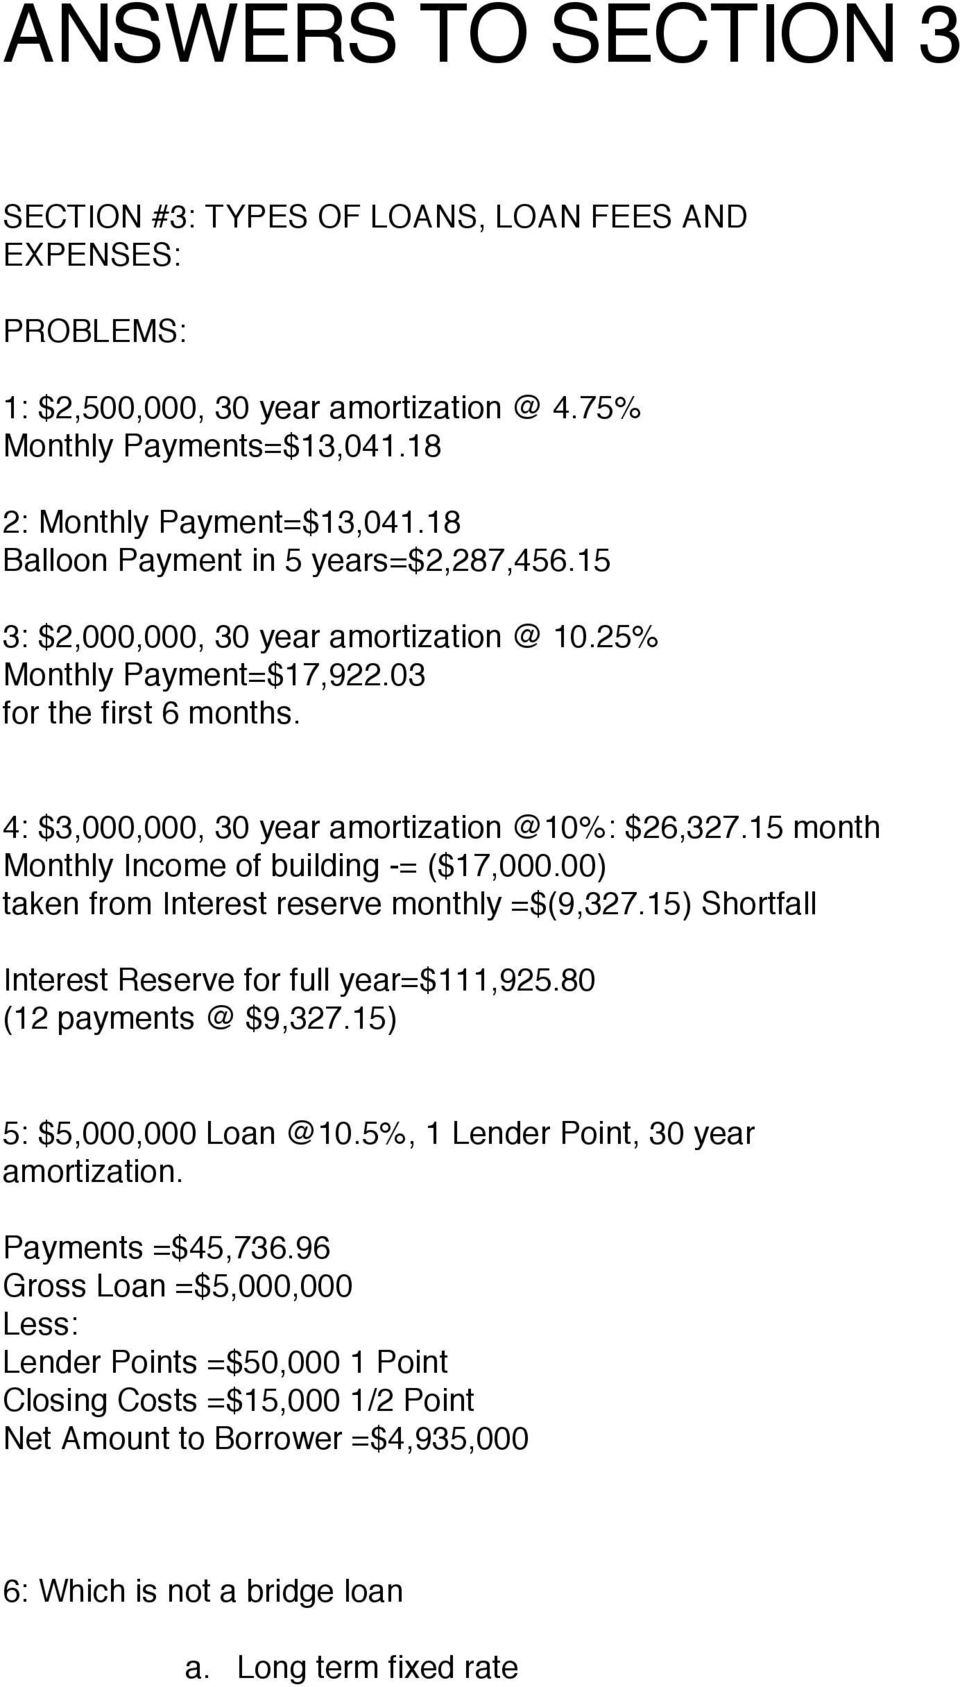 15 month Monthly Income of building -= ($17,000.00) taken from Interest reserve monthly =$(9,327.15) Shortfall Interest Reserve for full year=$111,925.80 (12 payments @ $9,327.